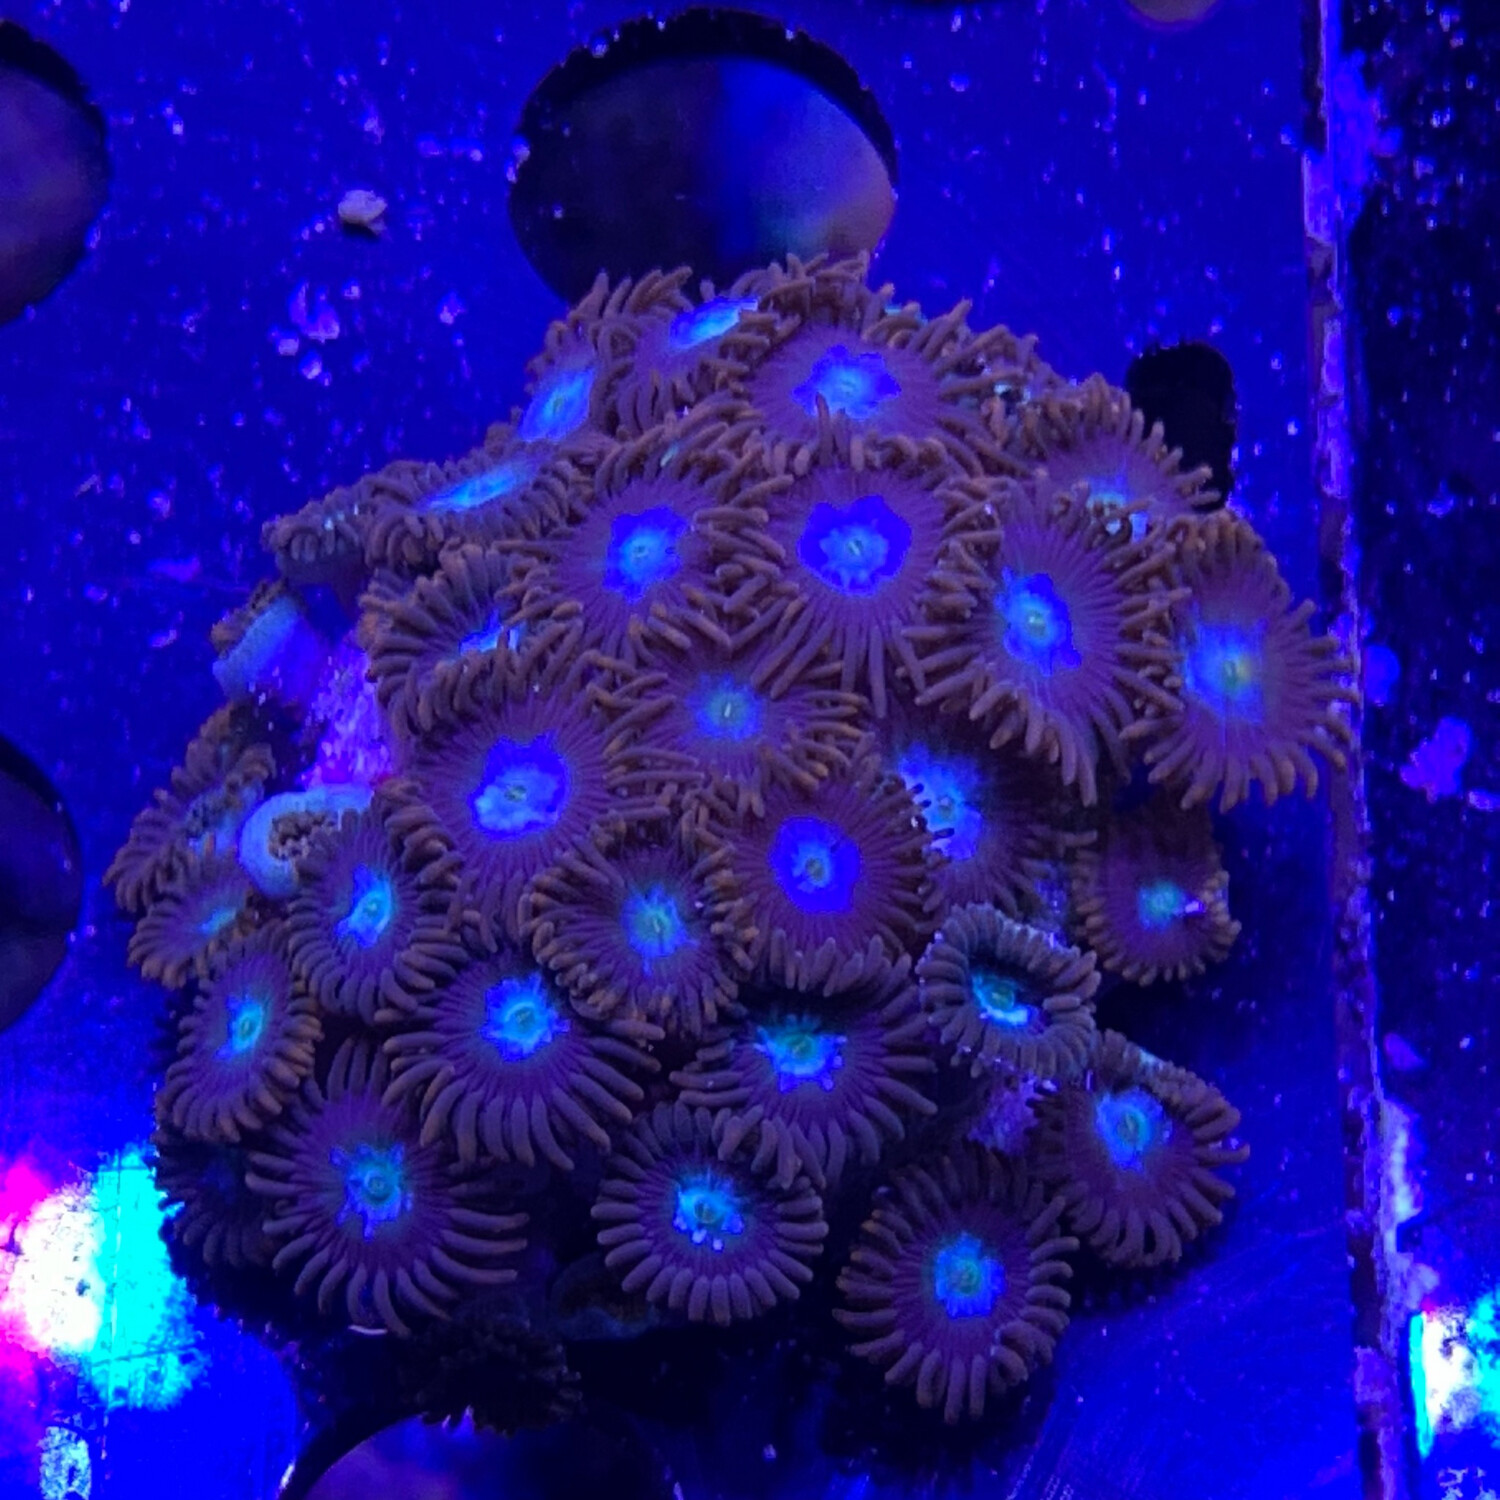 Fire and Ice Zoa colony